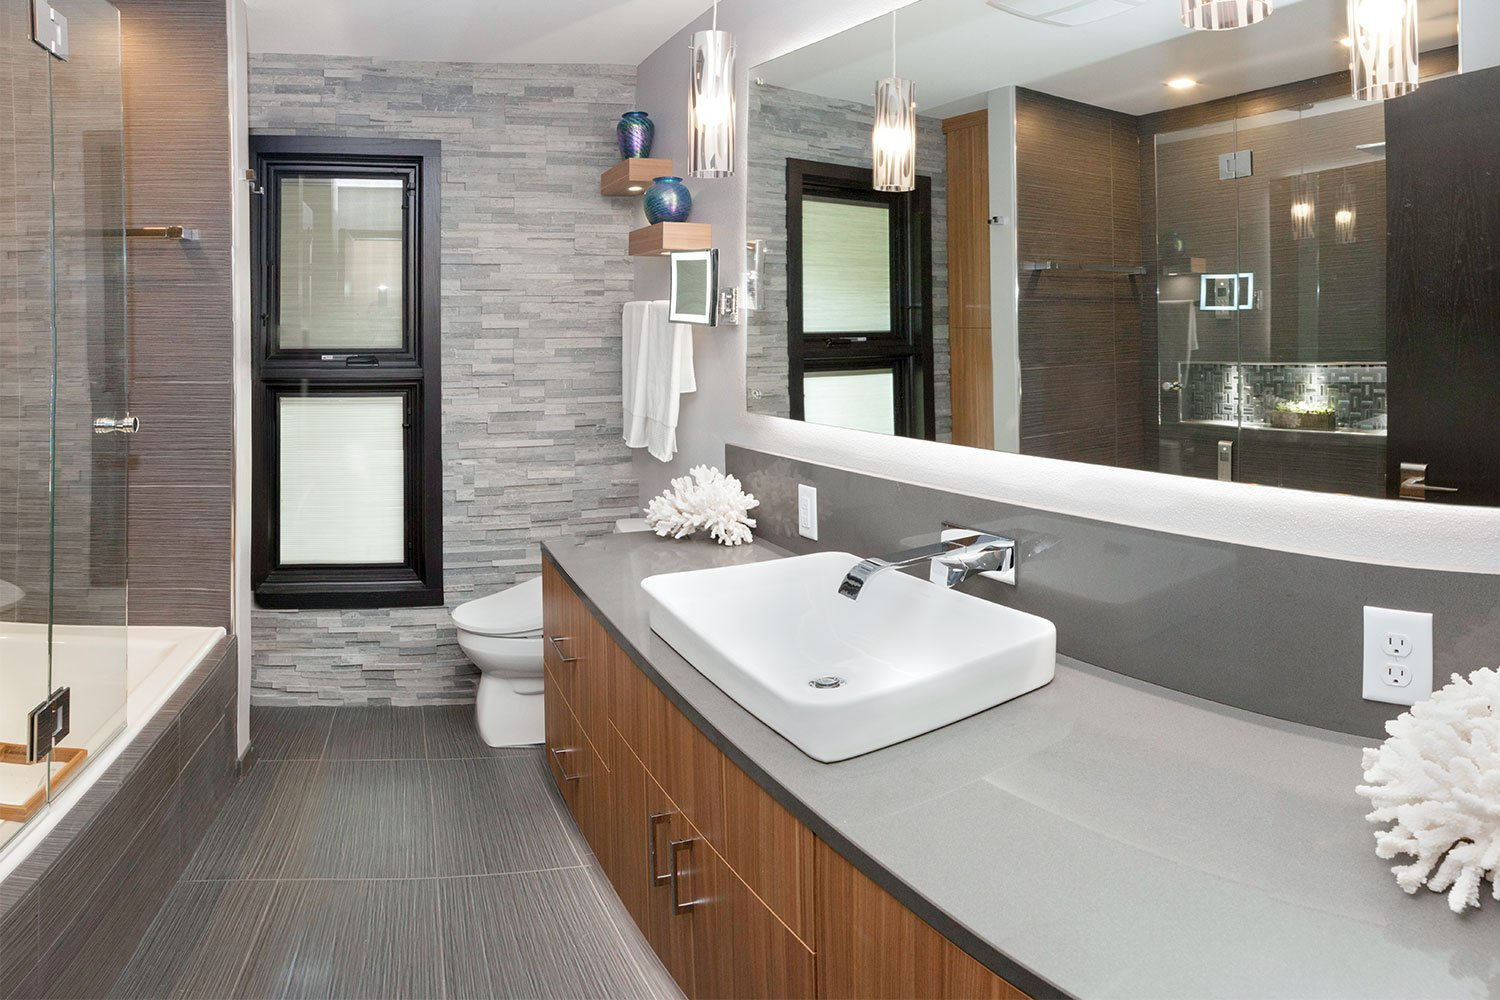 Bathroom sink and grey stone wall